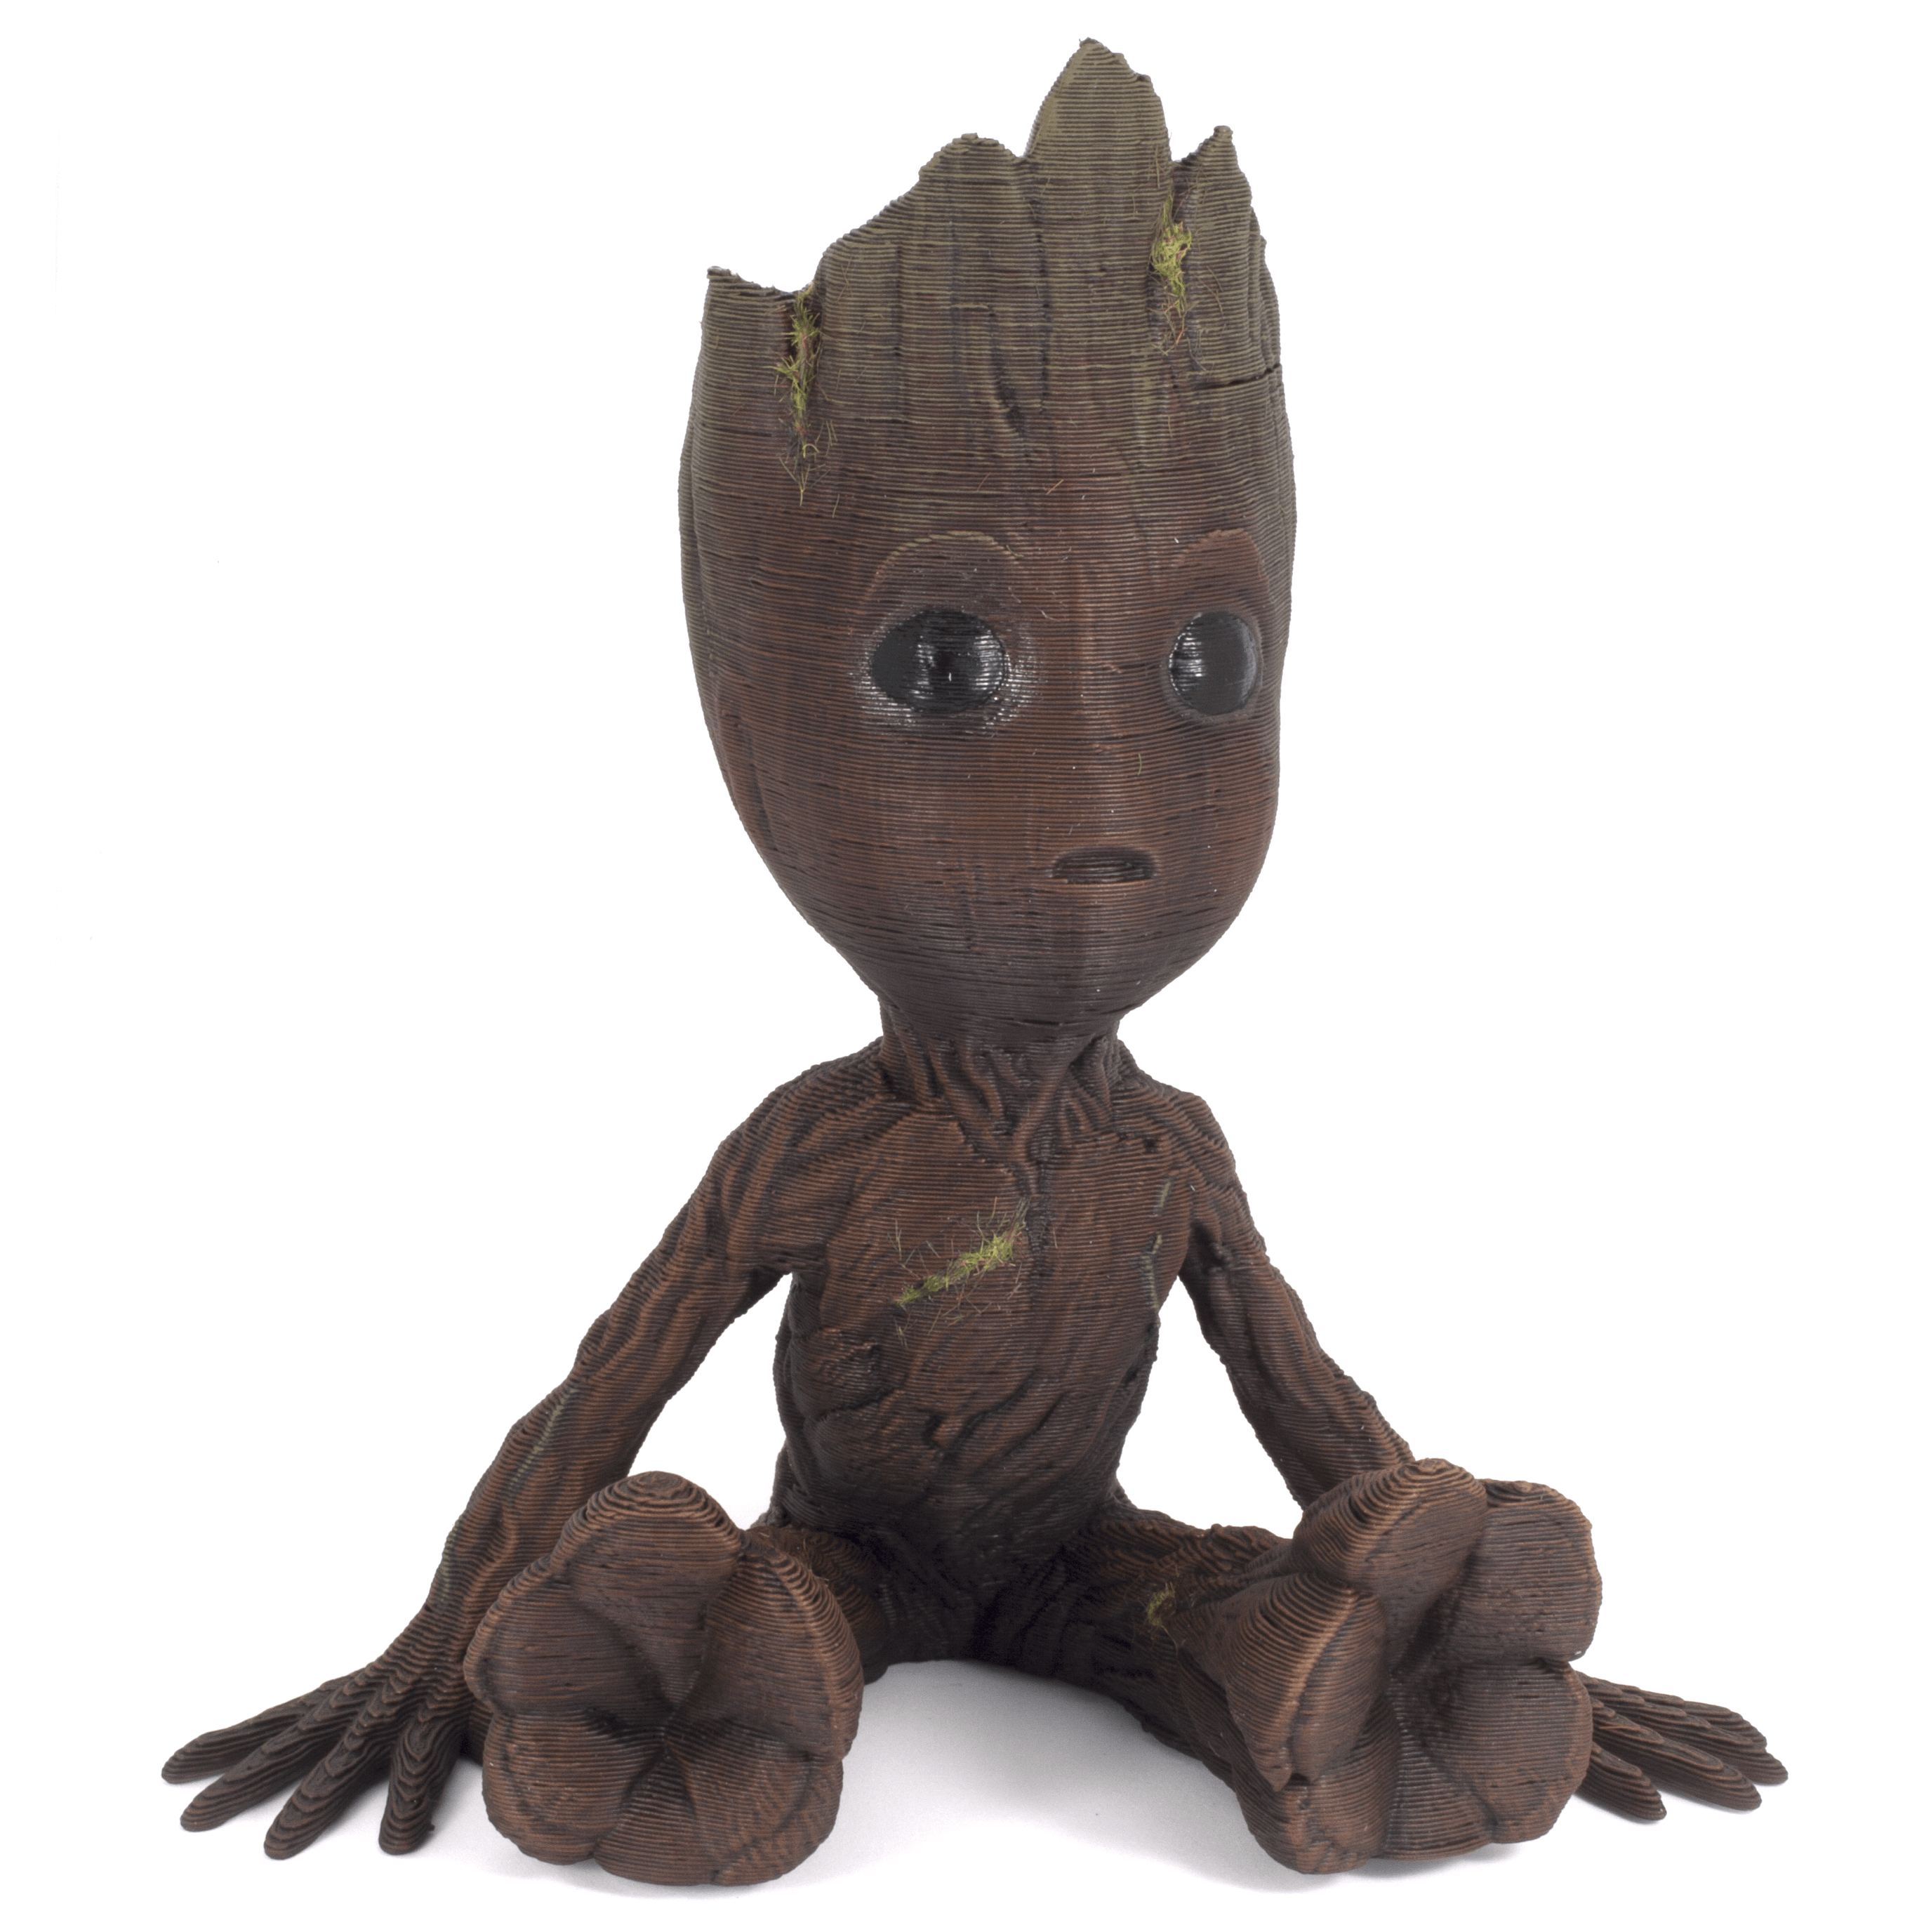 Painting a 3D Printed Groot step-by step